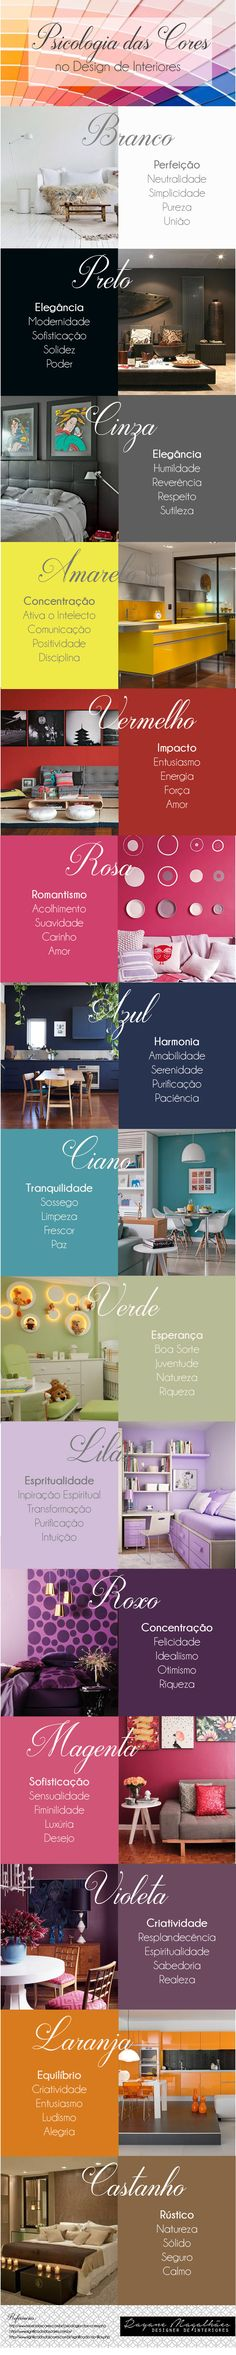 PSICOLOGIA DAS CORES Web Design, House Design, Art Decor, Diy Home Decor, Room Decor, Decor Ideas, Home Staging, Interior Design Living Room, Interior Decorating